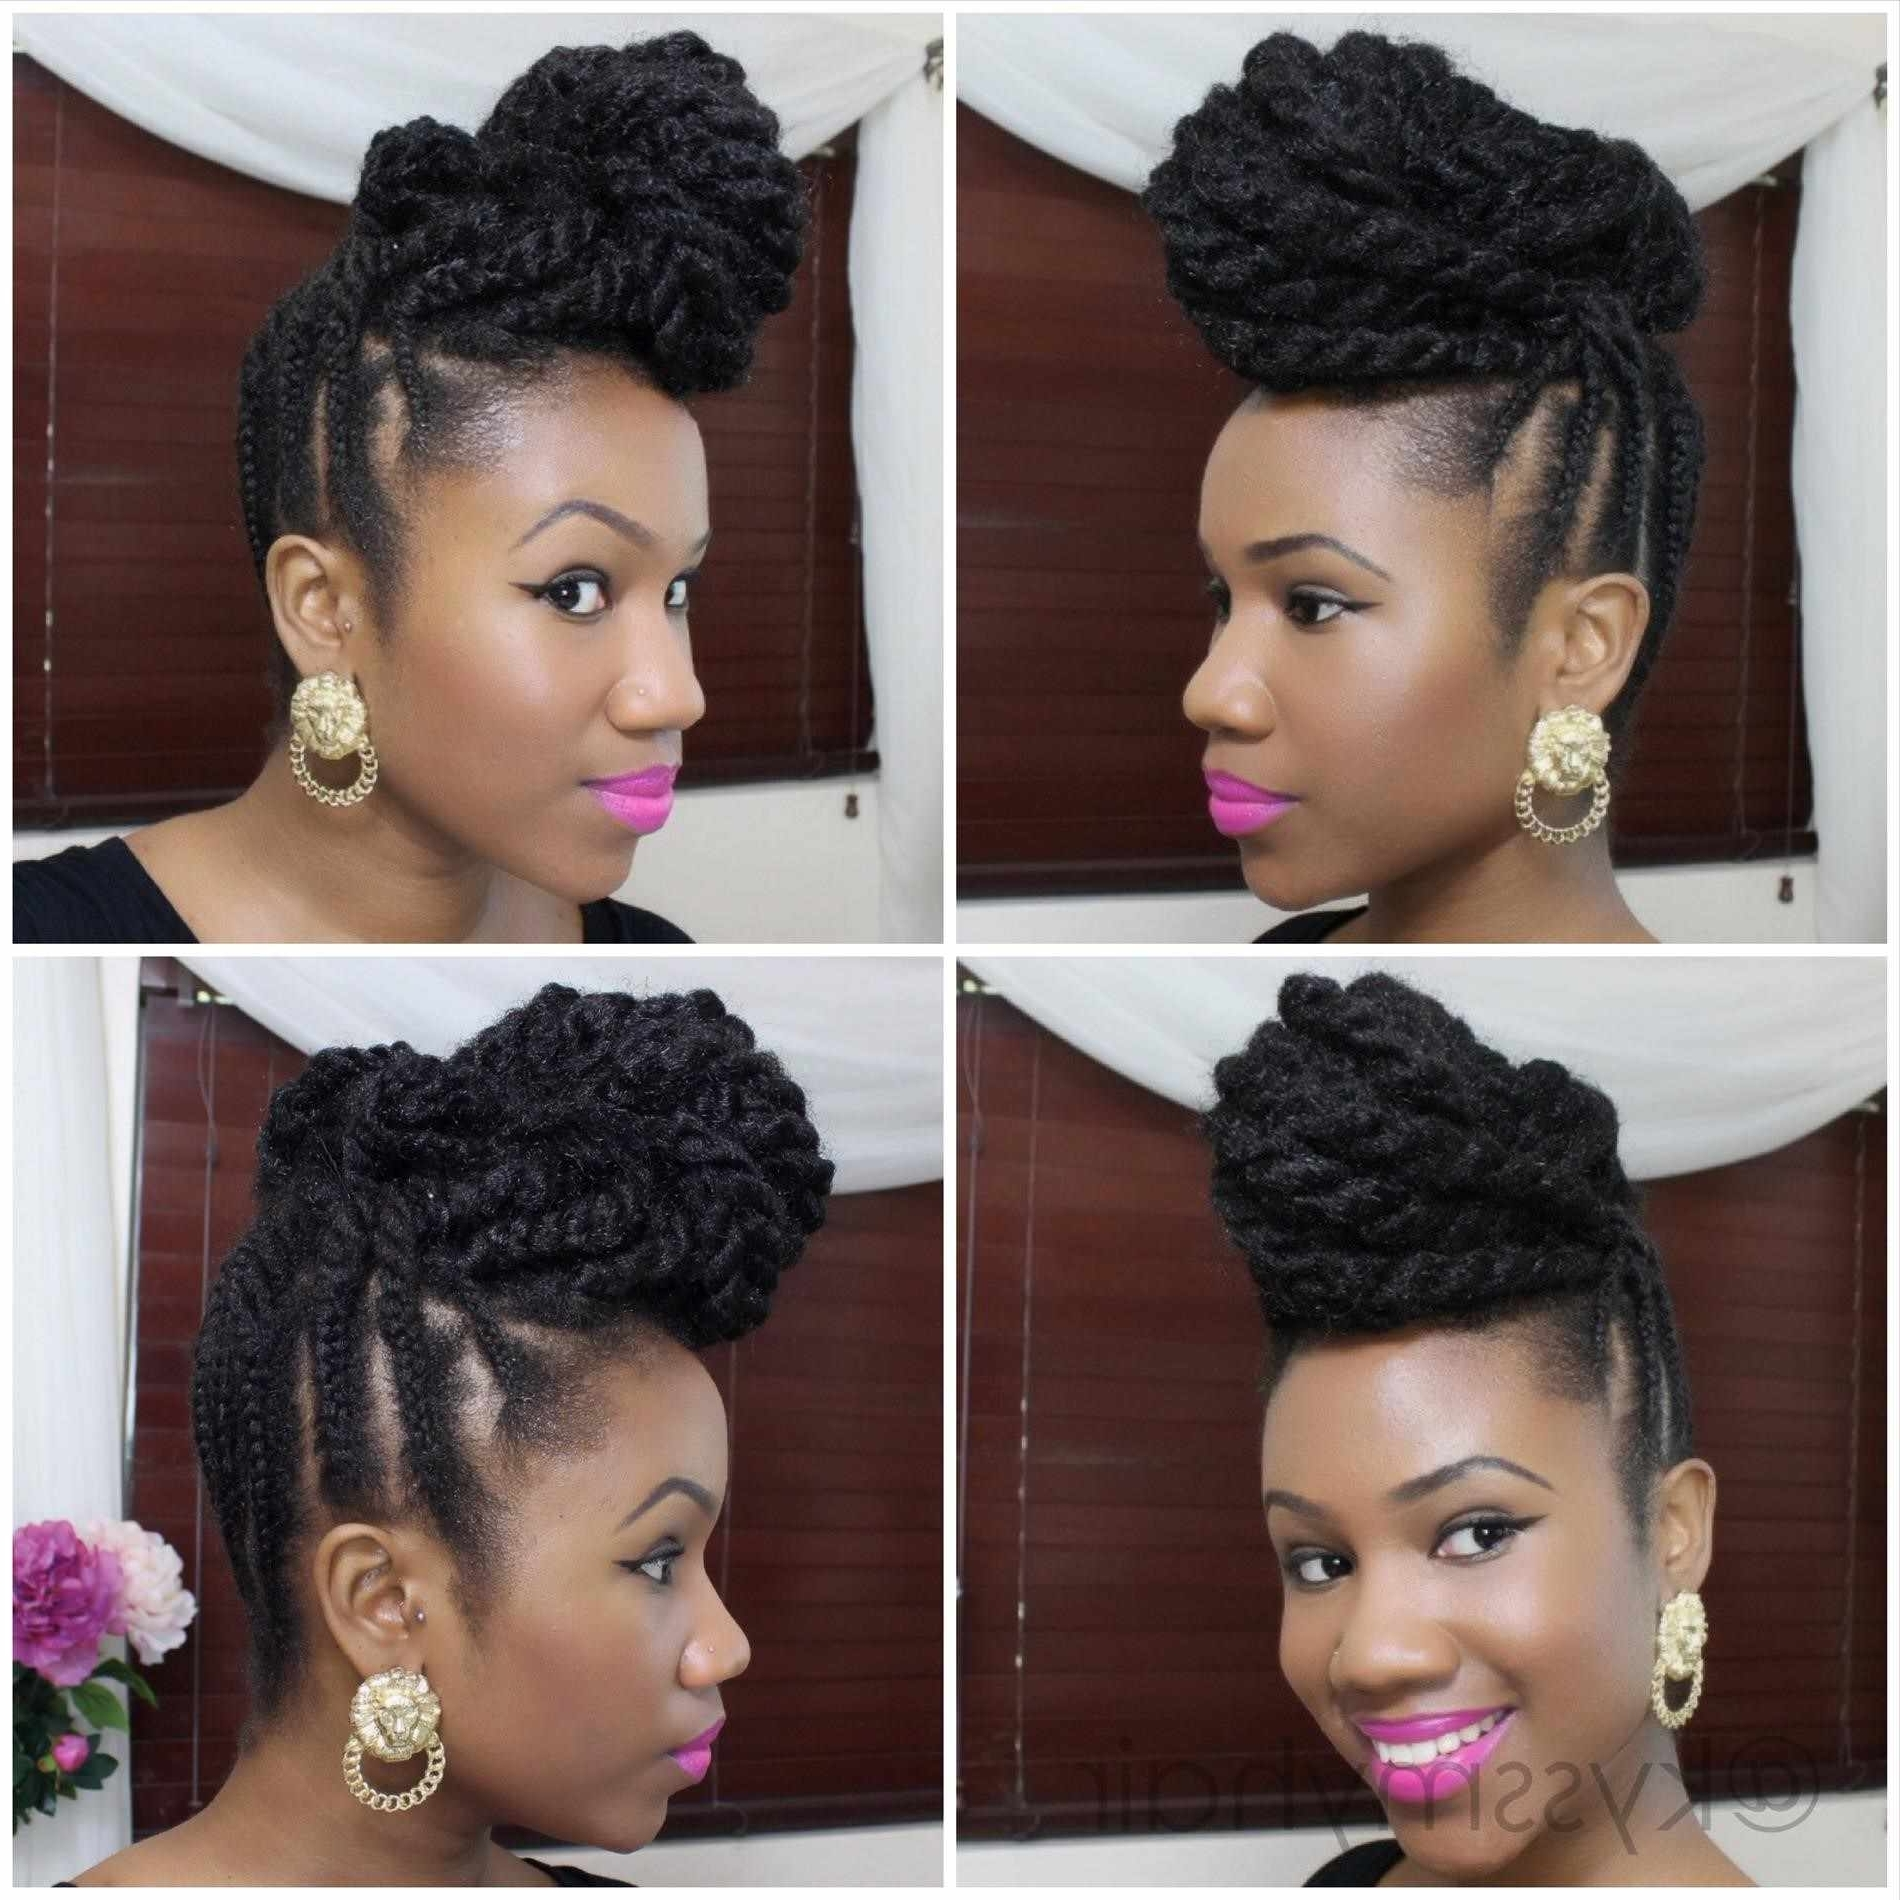 A Natural Braids African Braids Hairstyles Updo 2016 Hairstyles With Pertaining To Braided Updos With Extensions (View 9 of 15)